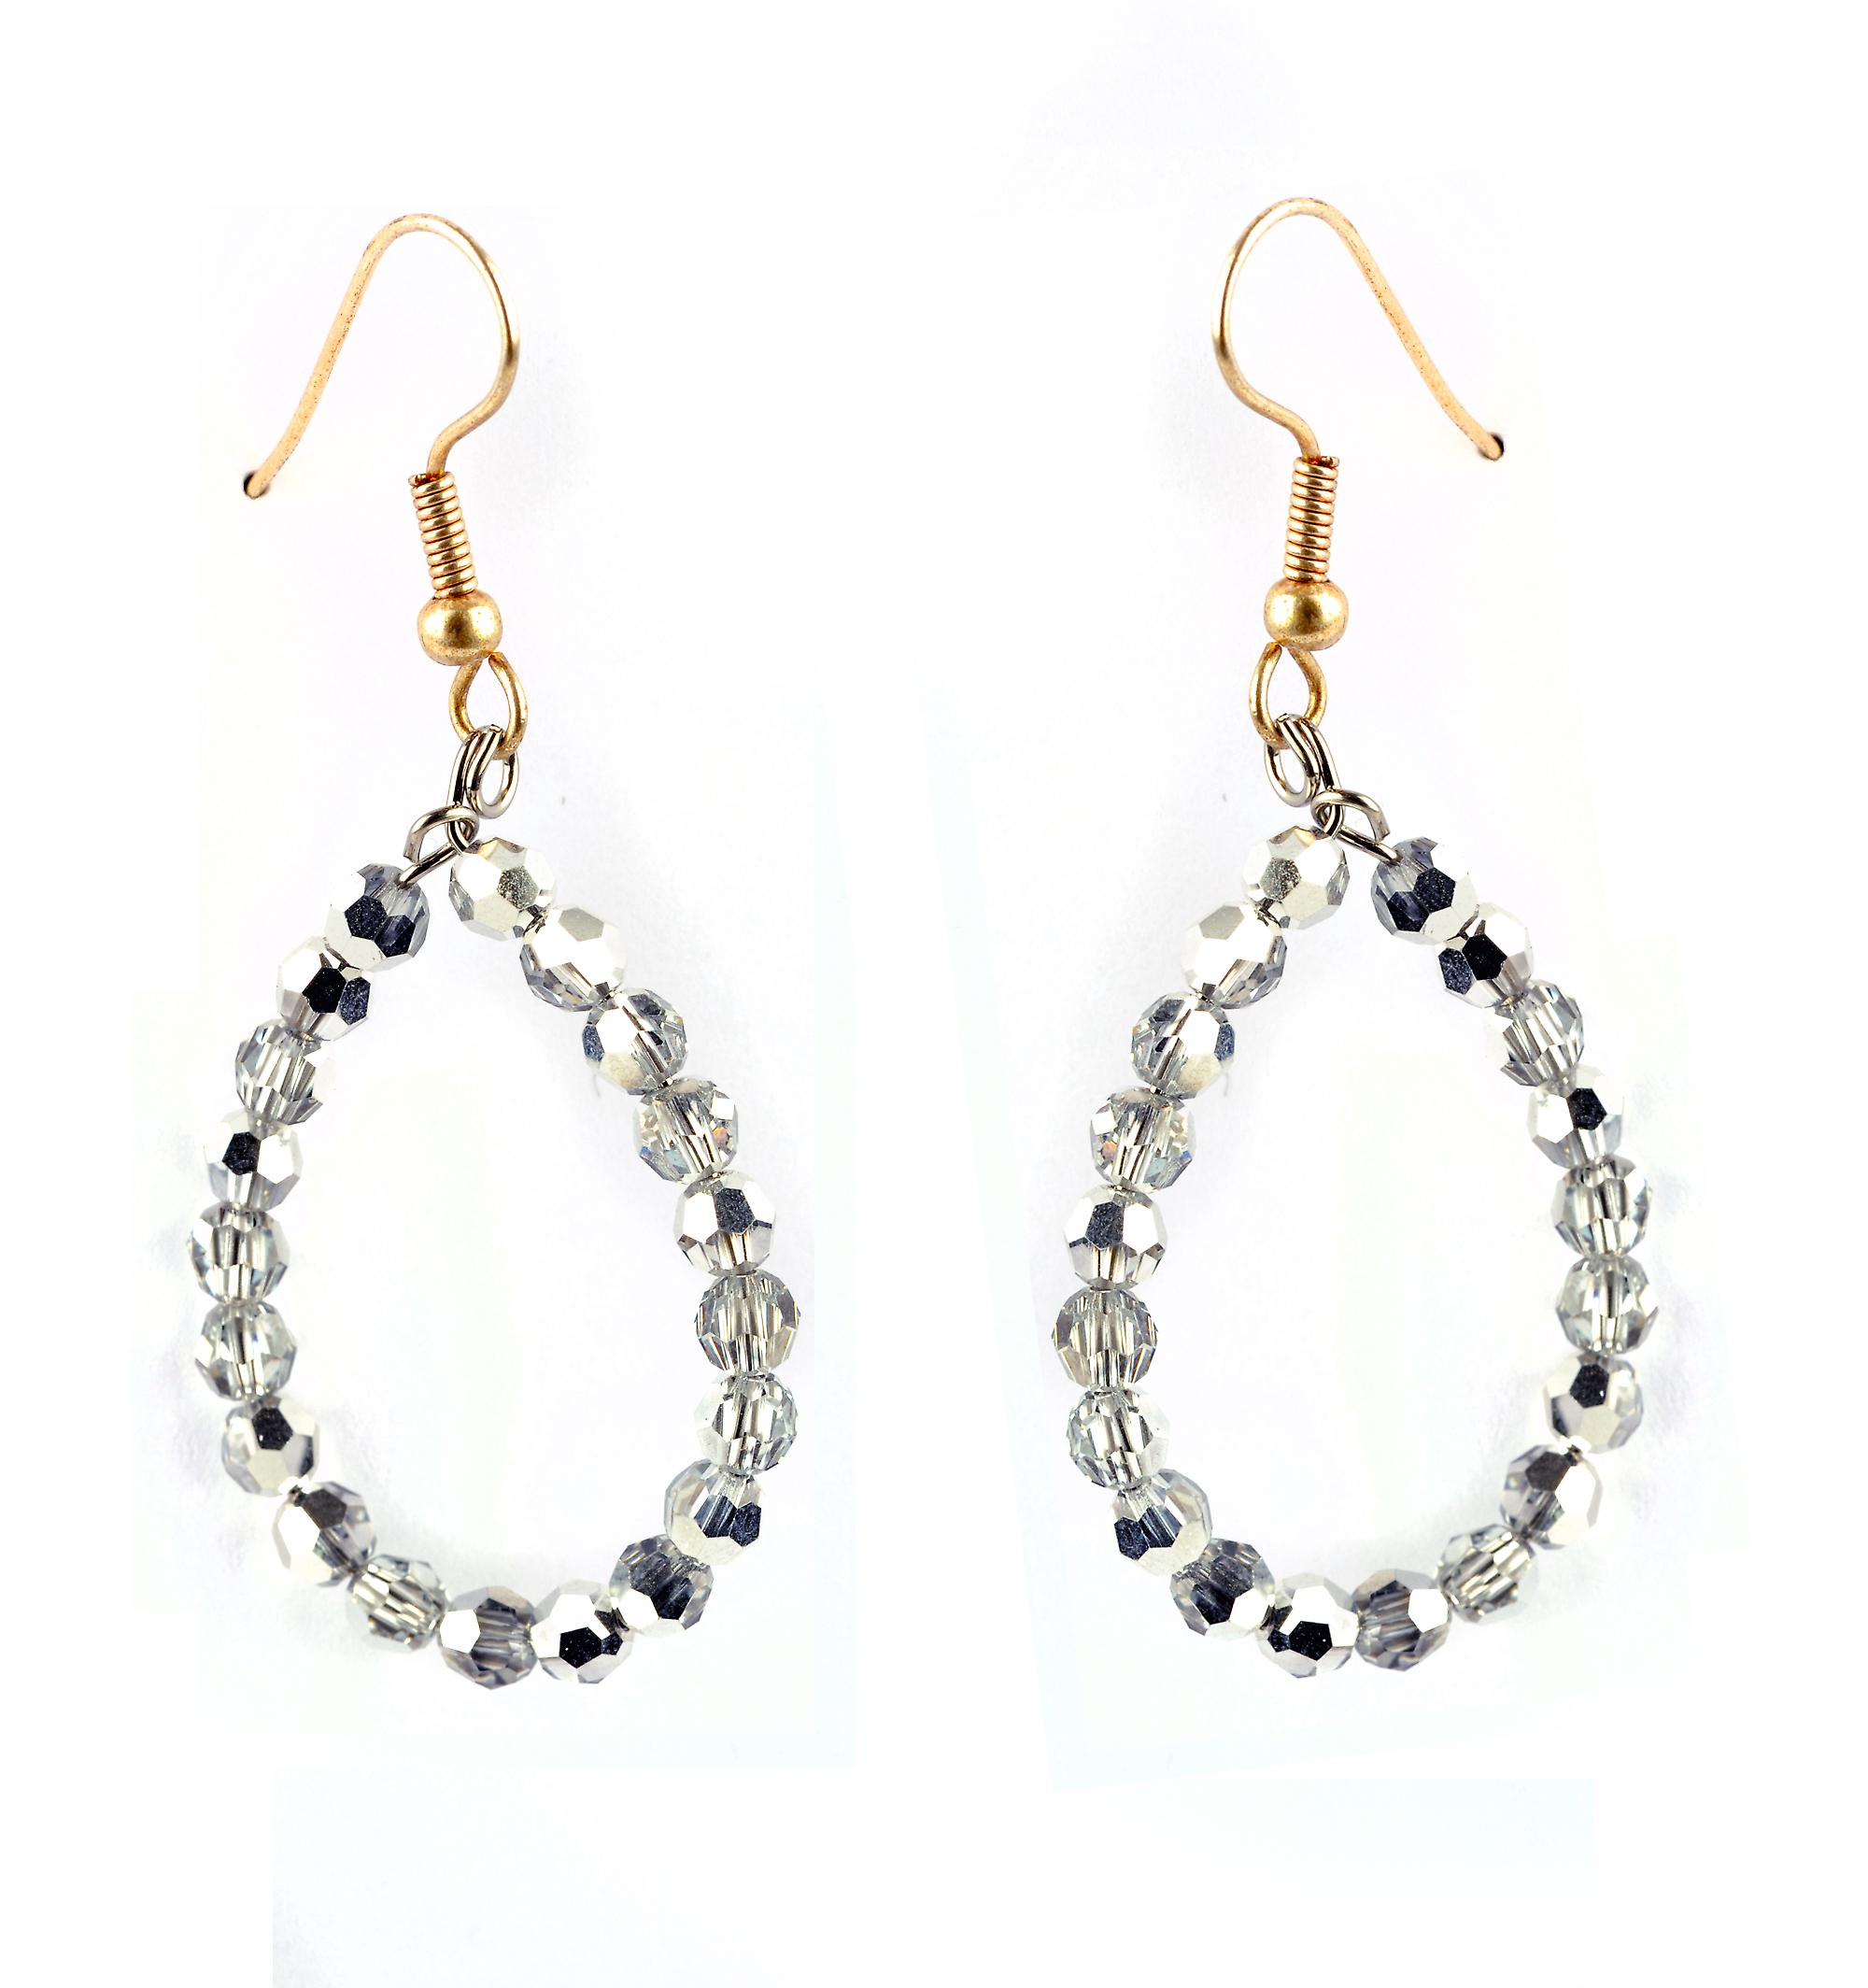 Waooh - Fashion Jewellery - WJ0709 - D'Oreille earrings with Swarovski Strass Silver Color - Colour Gold Frame